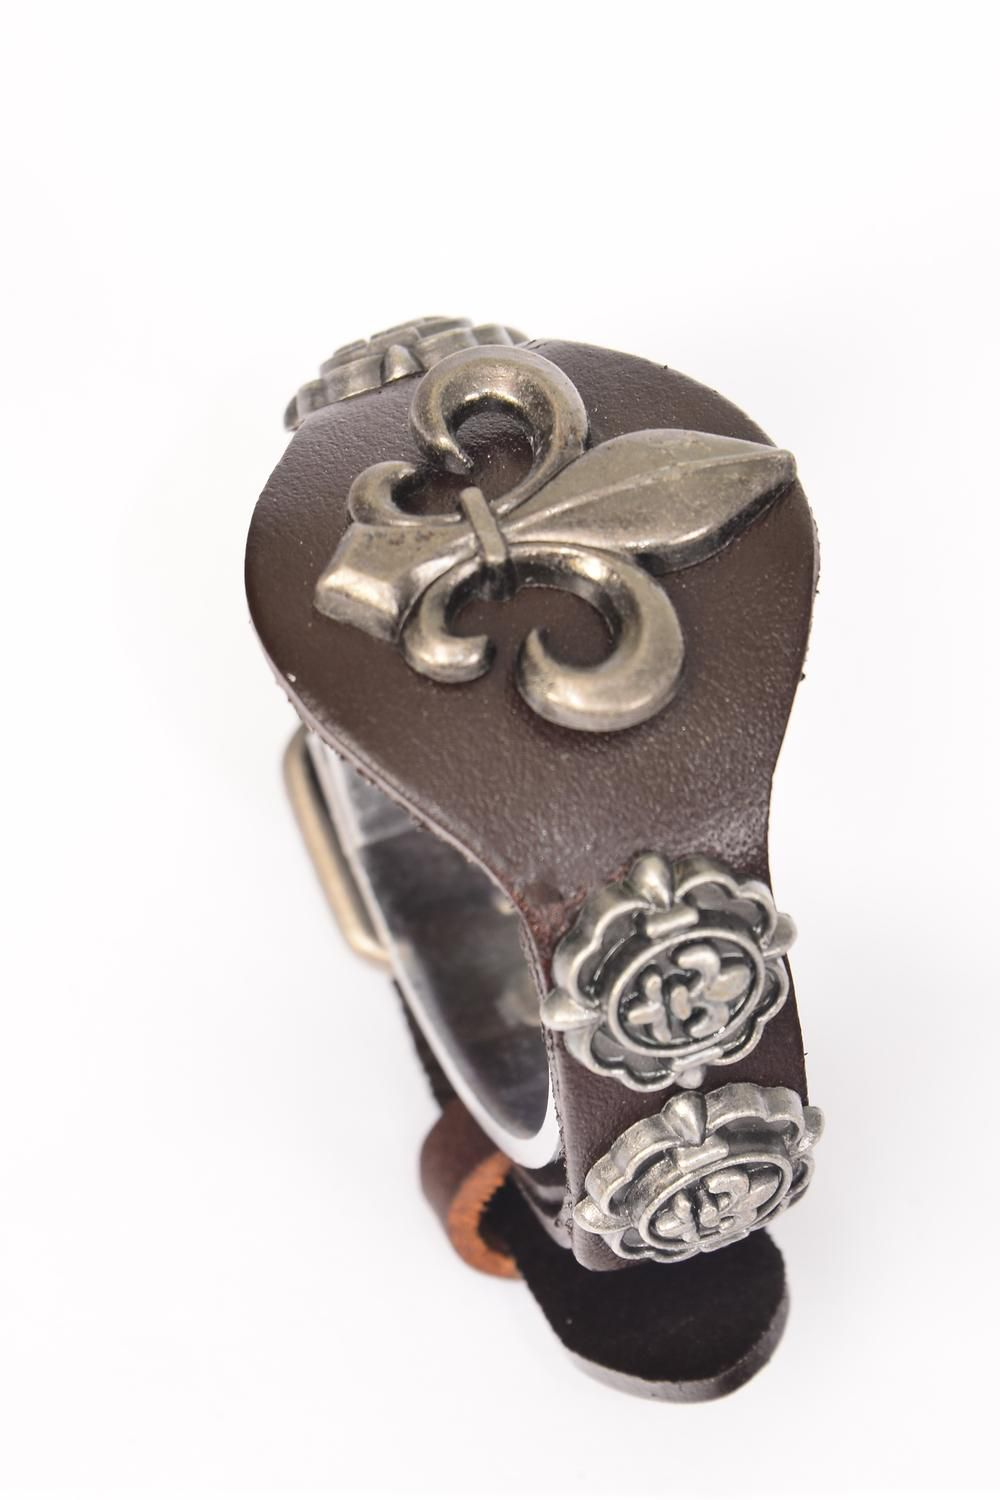 Bracelet Leather Strap Belt Buckle Flue Delis Brown/PC **Unisex** Brown,Buckle Adjustable Size,OPP Bag & UPC Code